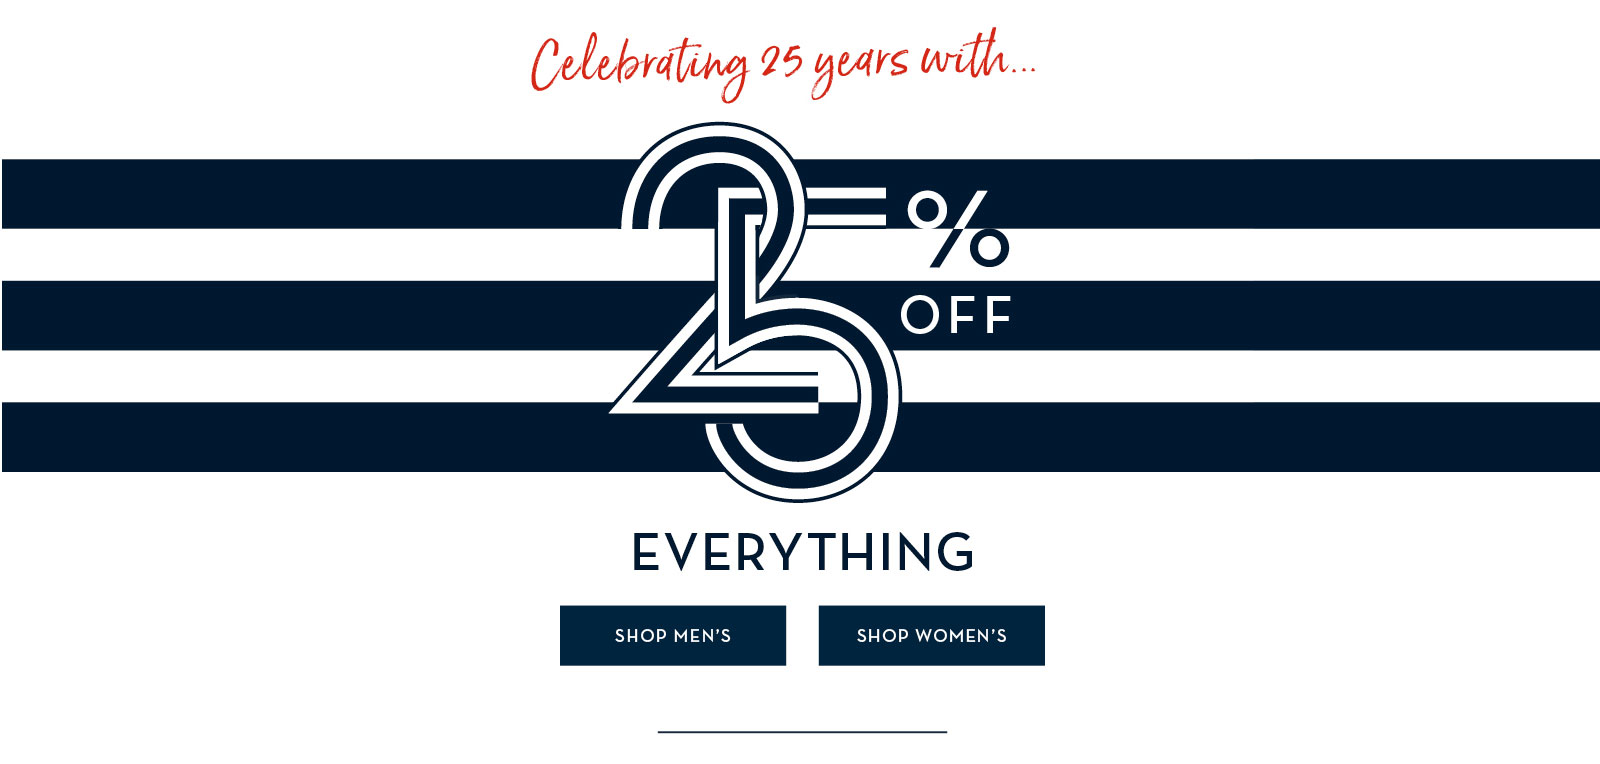 Celebrating 25 Years with 25% off Everything